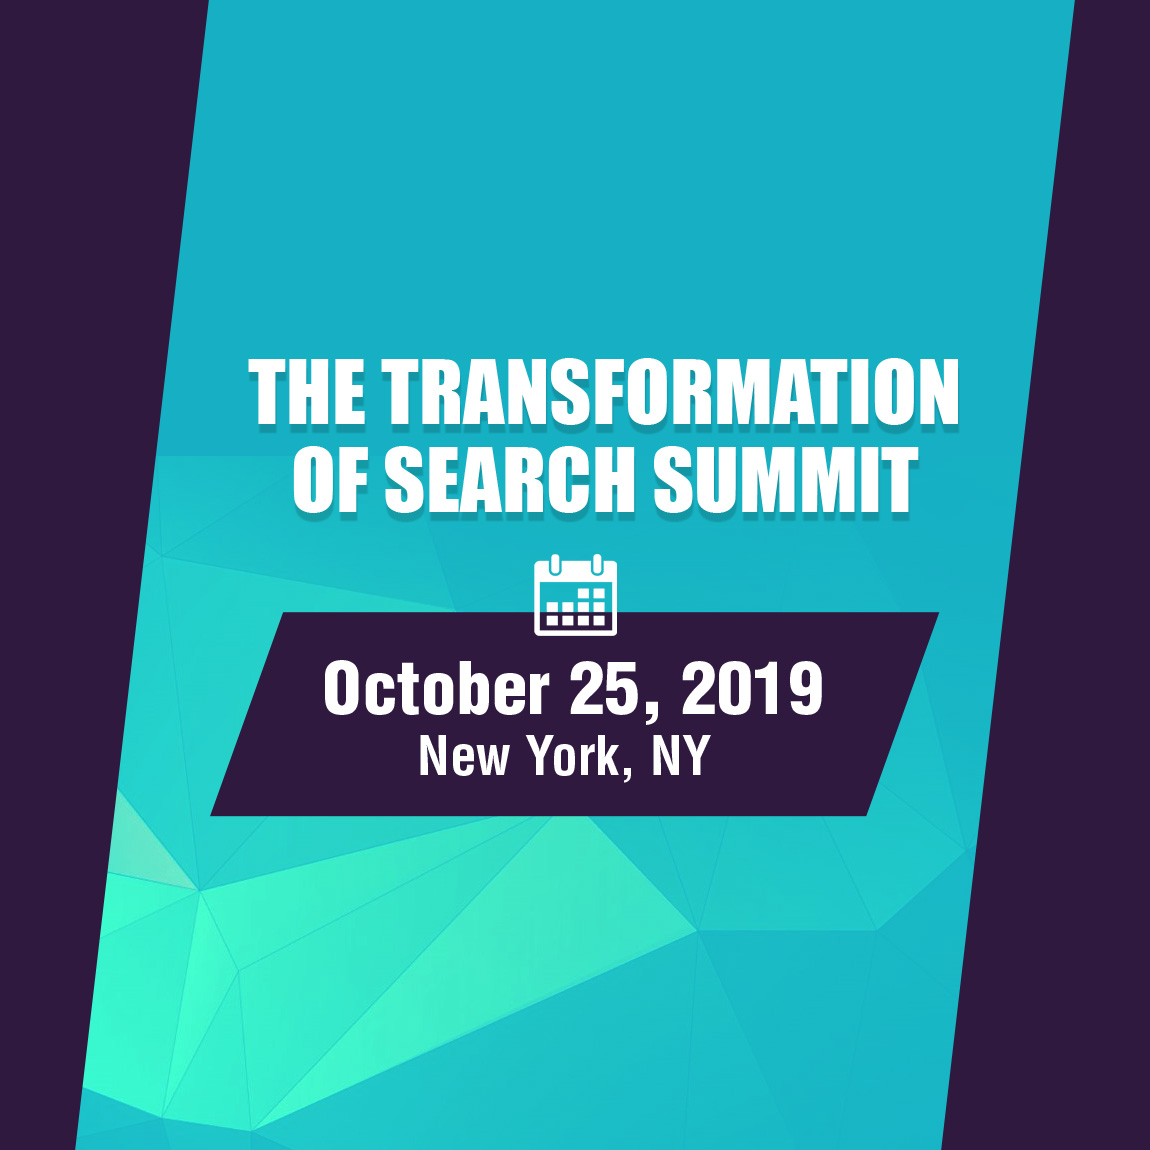 The Transformation of Search Summit